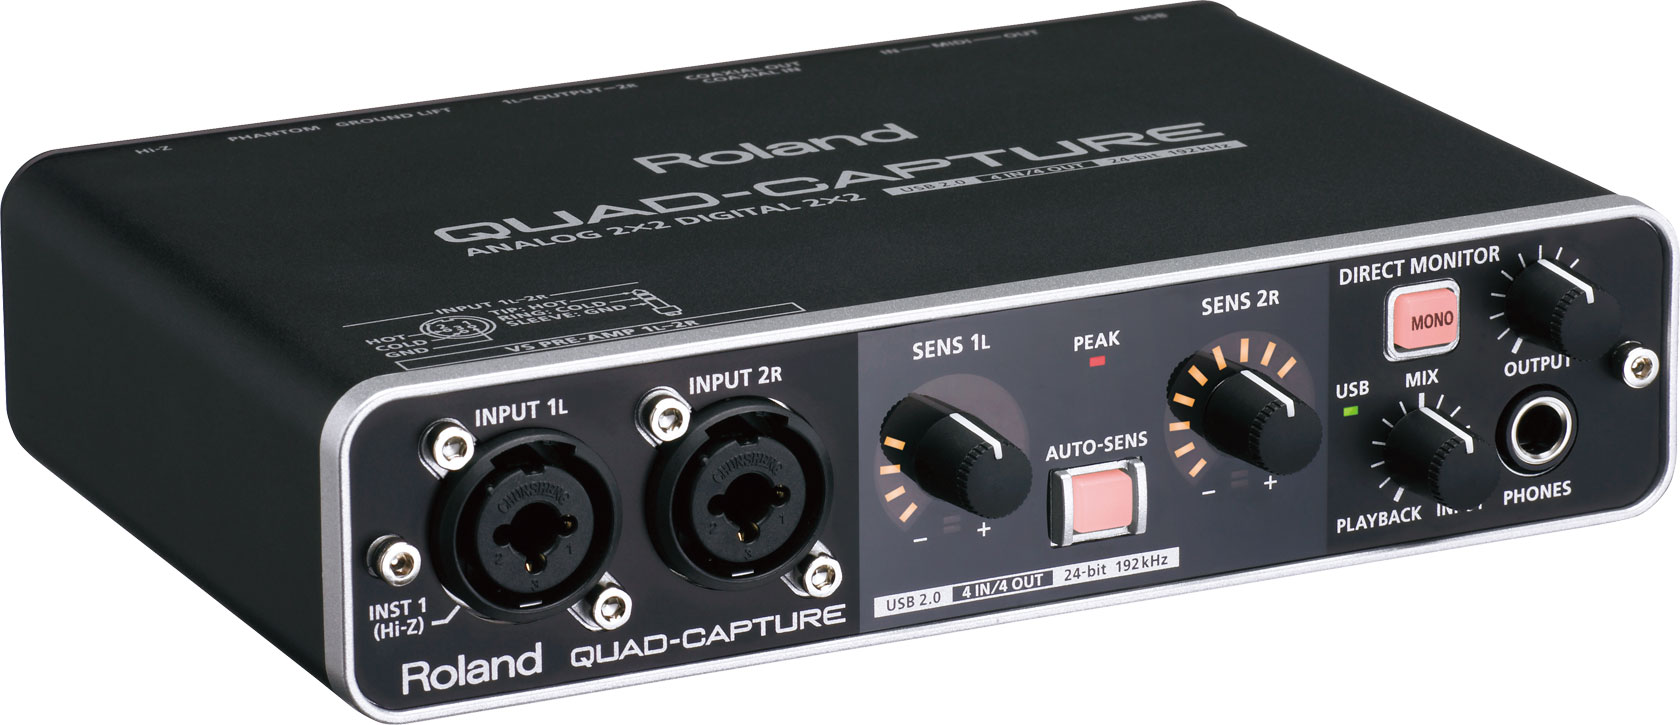 Roland - QUAD-CAPTURE | USB 2.0 Audio Interface